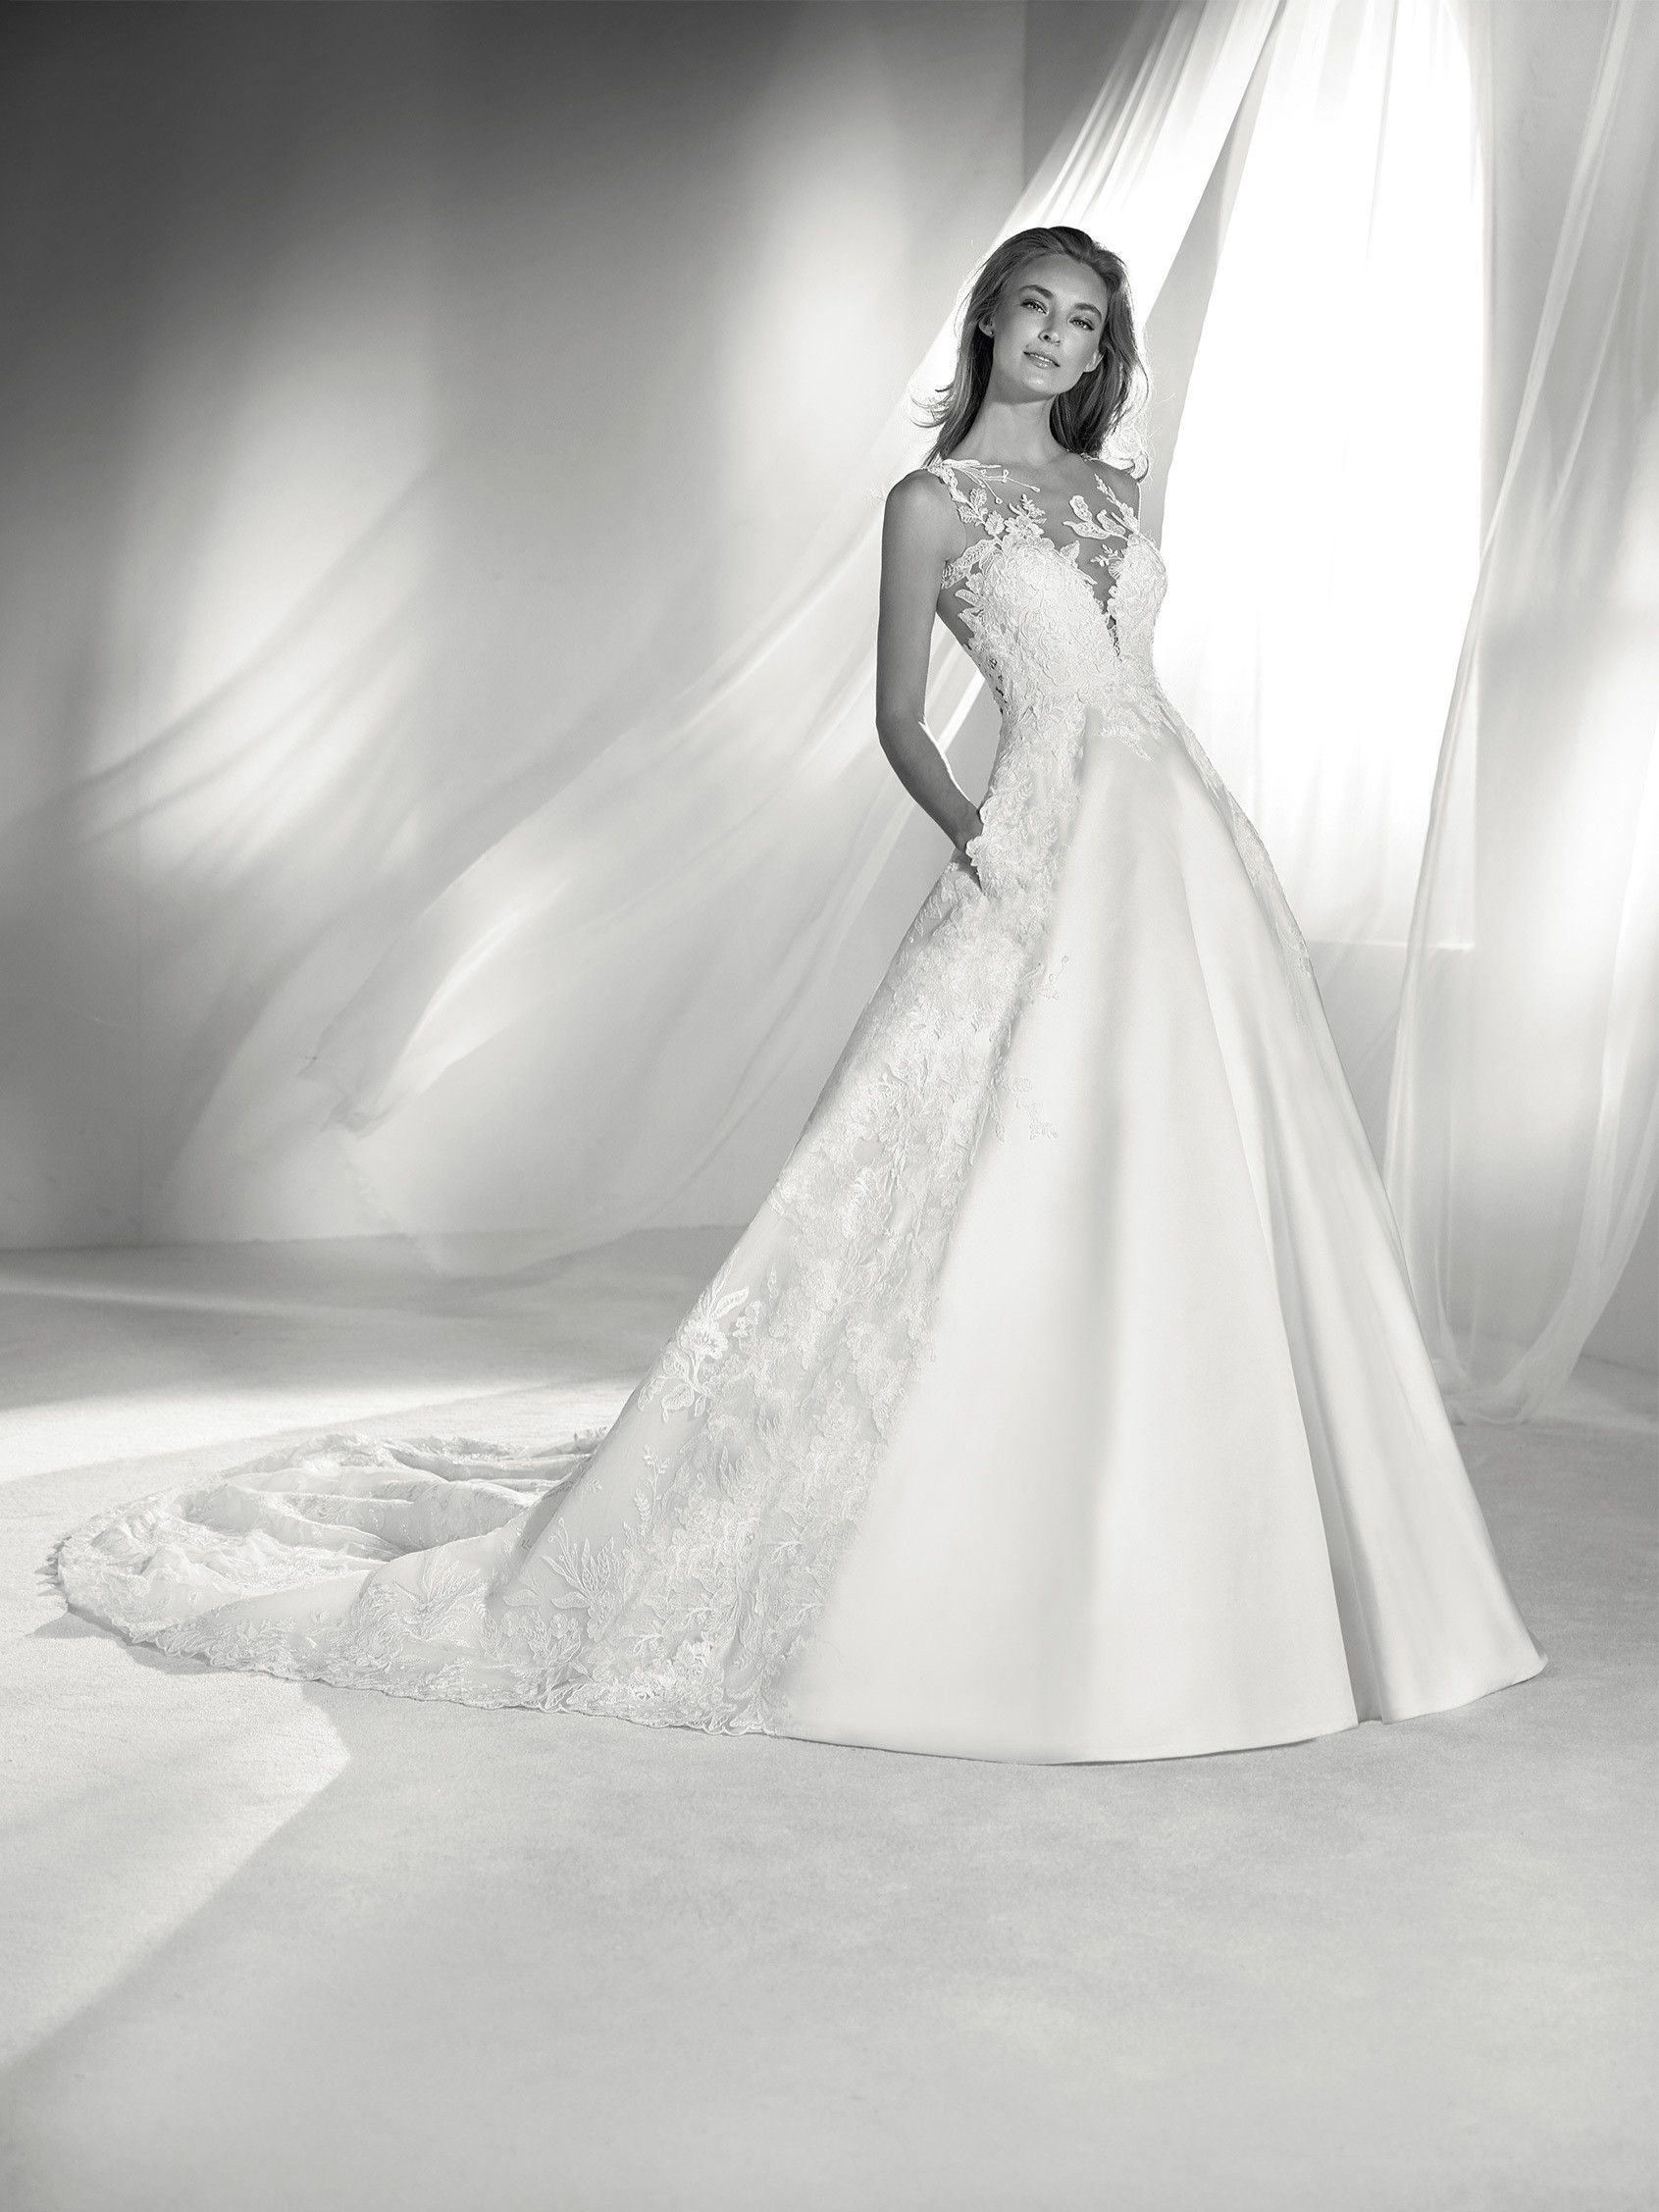 RIA: Majestic wedding dress with a voluminous skirt that contrasts ...